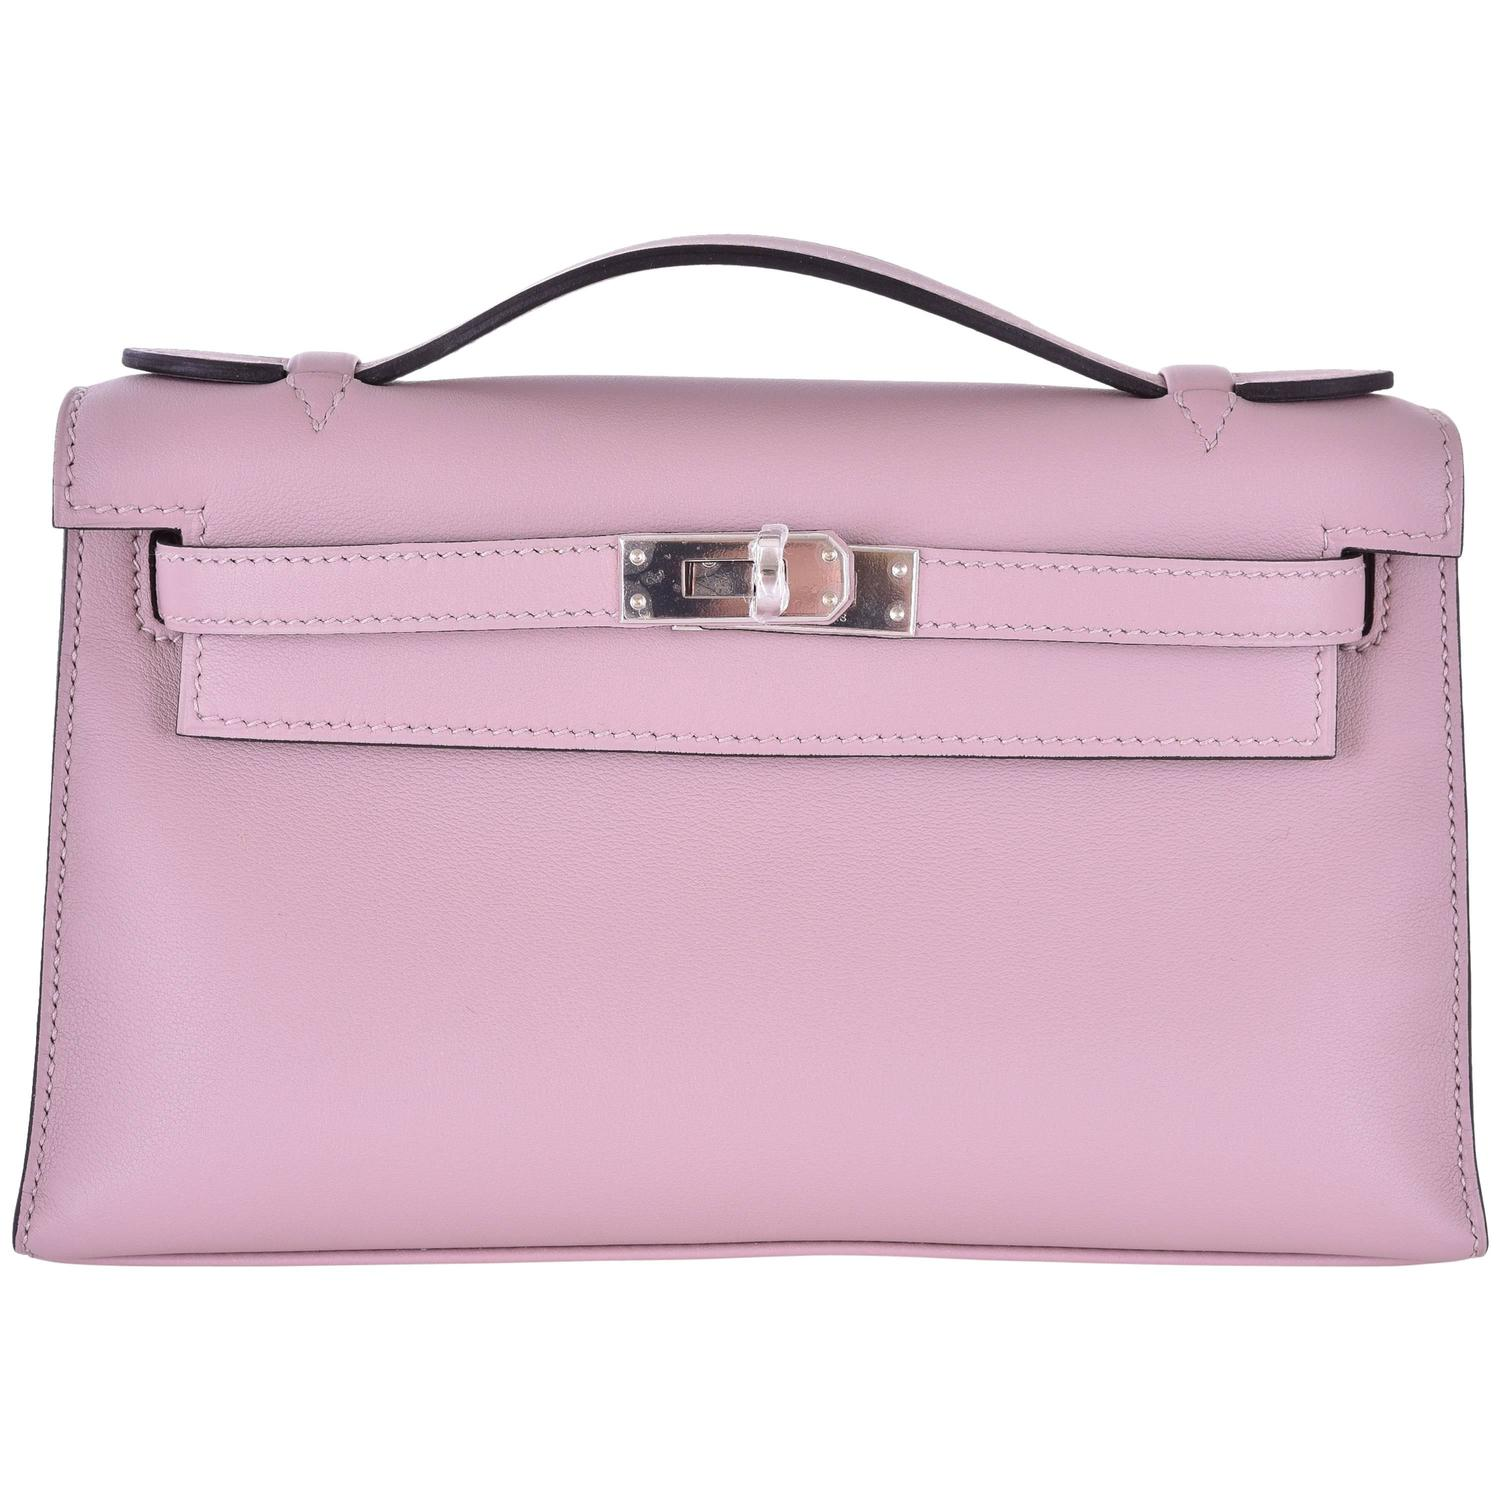 hermes sapphire mini kelly pochette palladium hardware janefinds